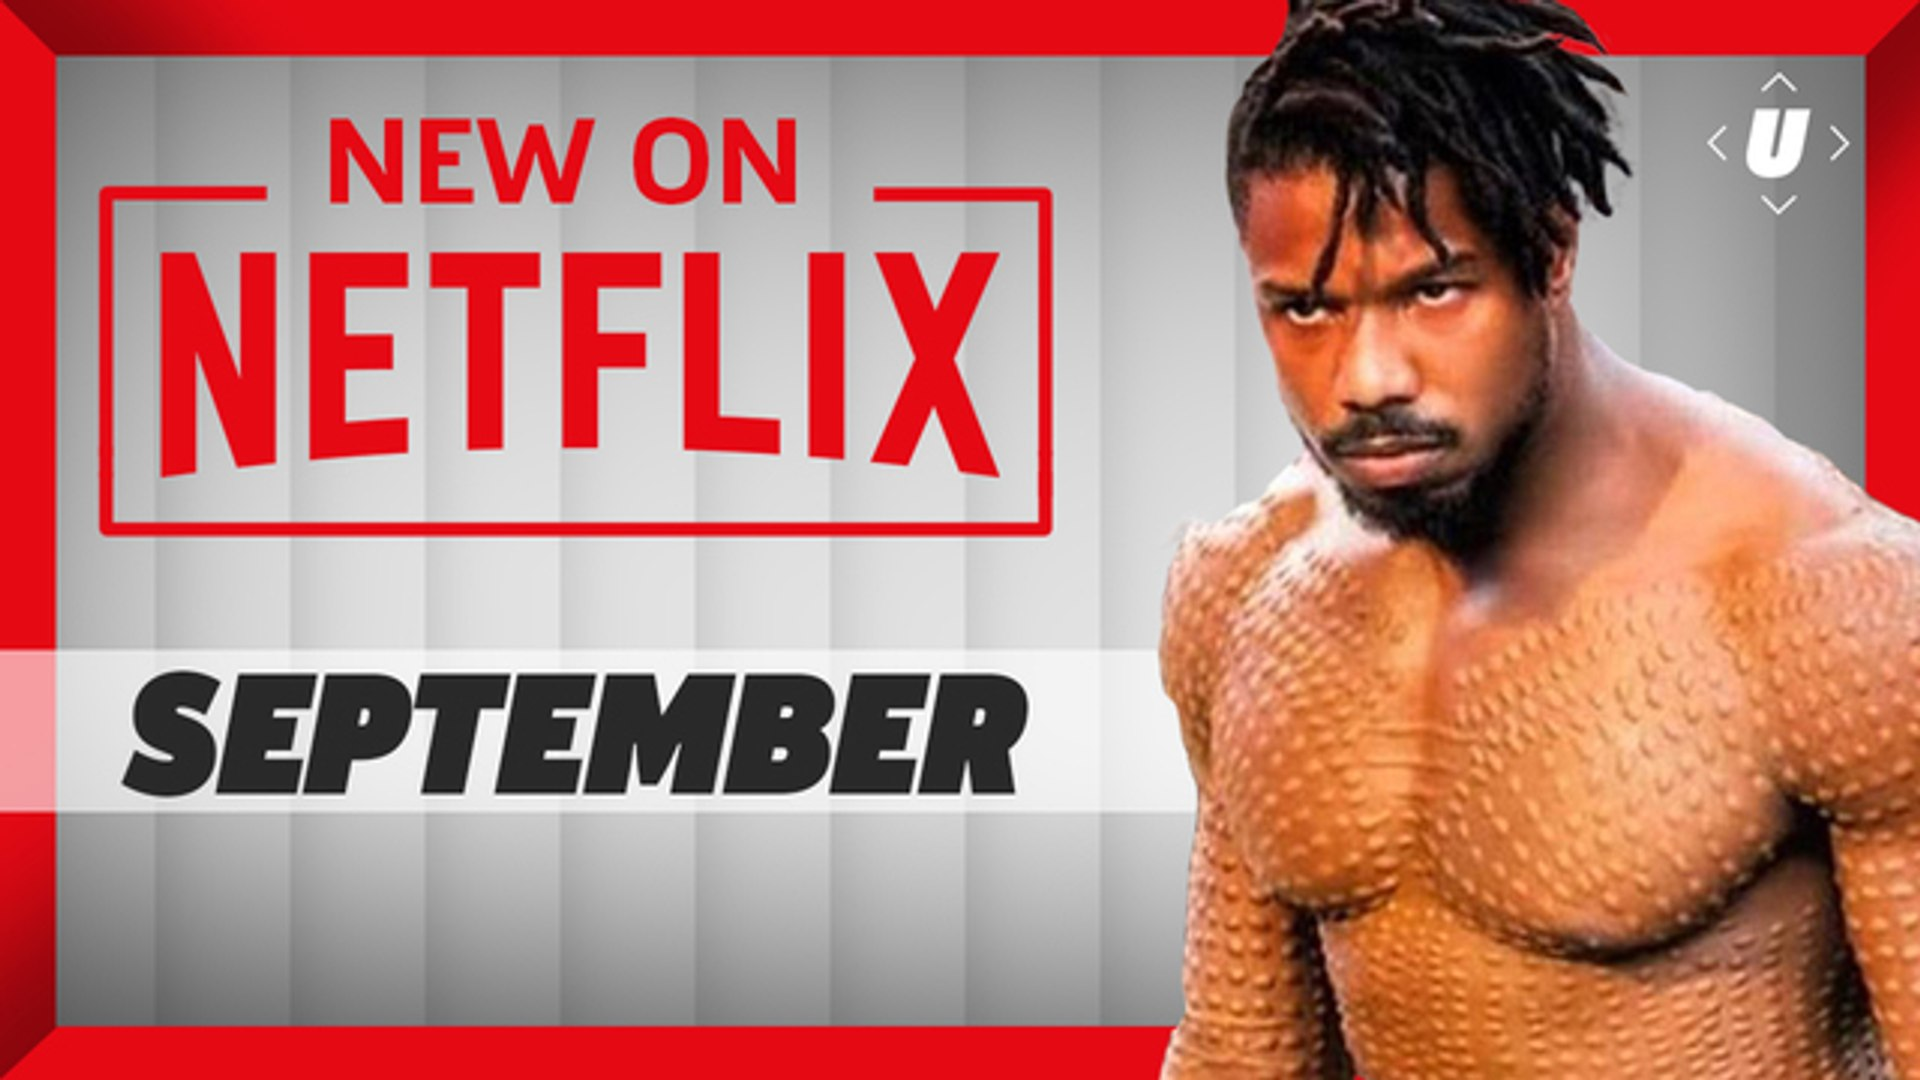 Best New Netflix Movies And TV Shows To Watch In September 2018!